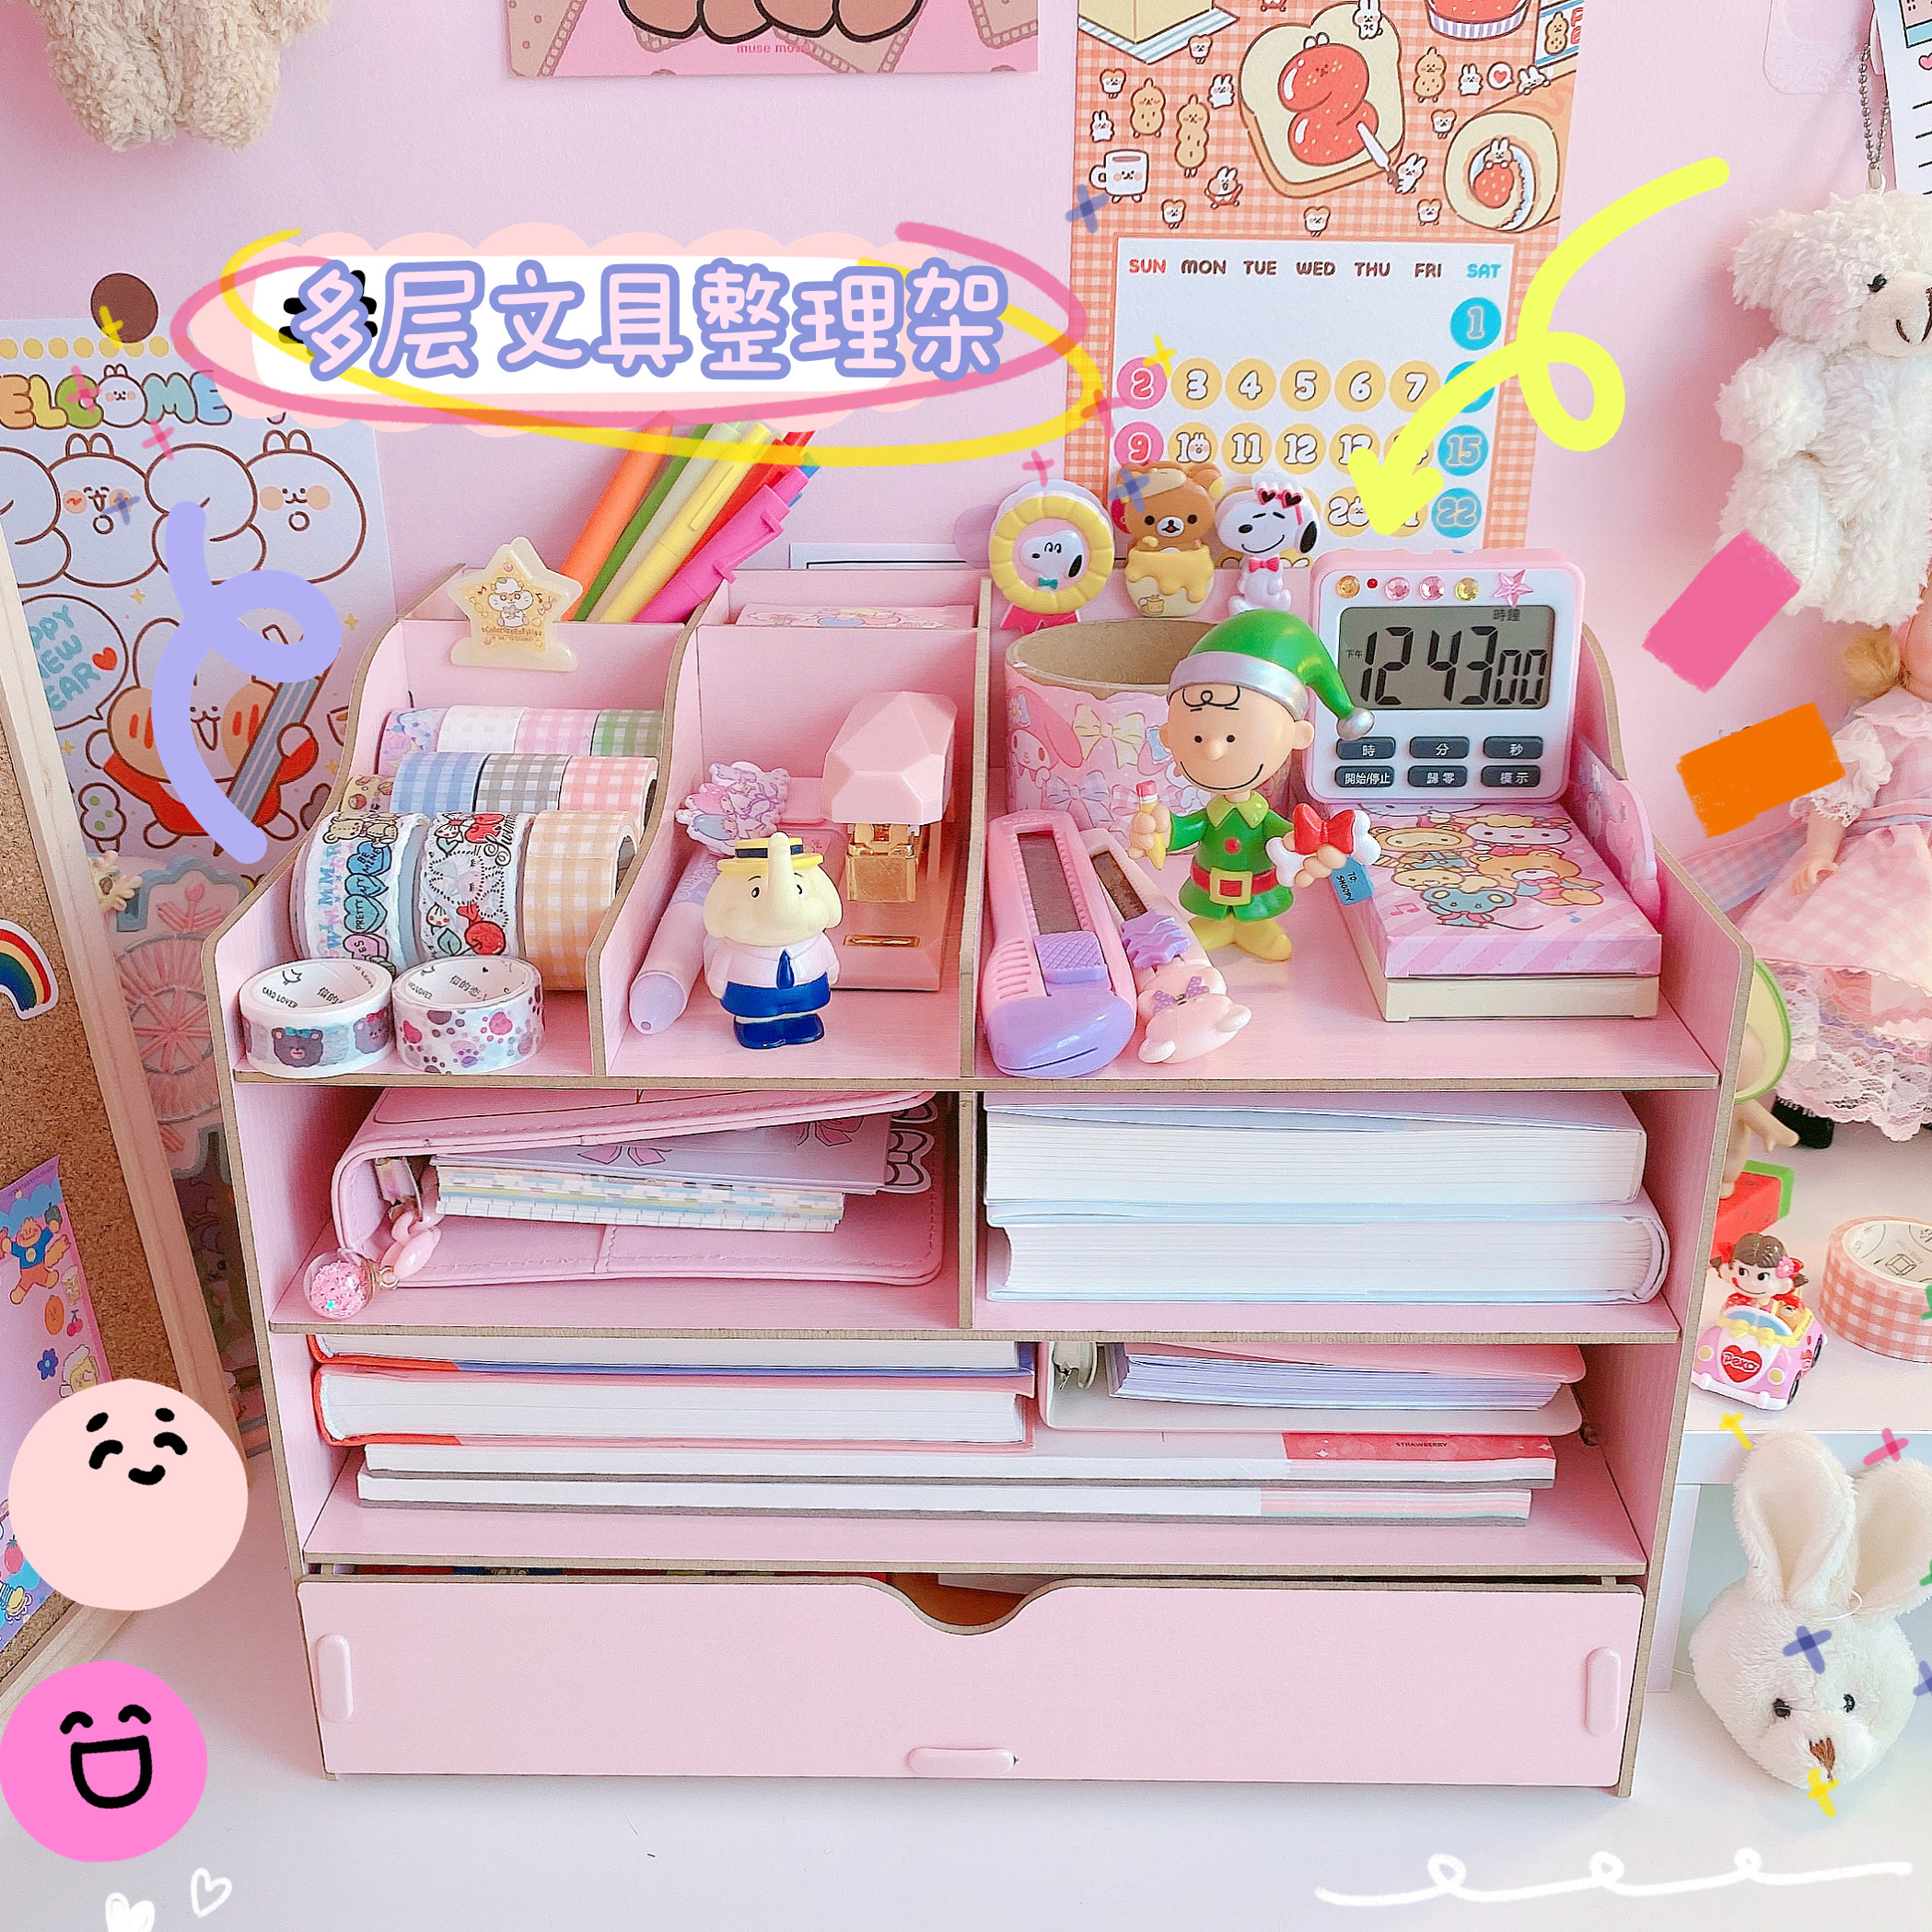 Wooden Cosmetic Makeup Organizer Book Holder Desk Stationery Storage Washi Tapes Collection Shelf Rack Dolls Display